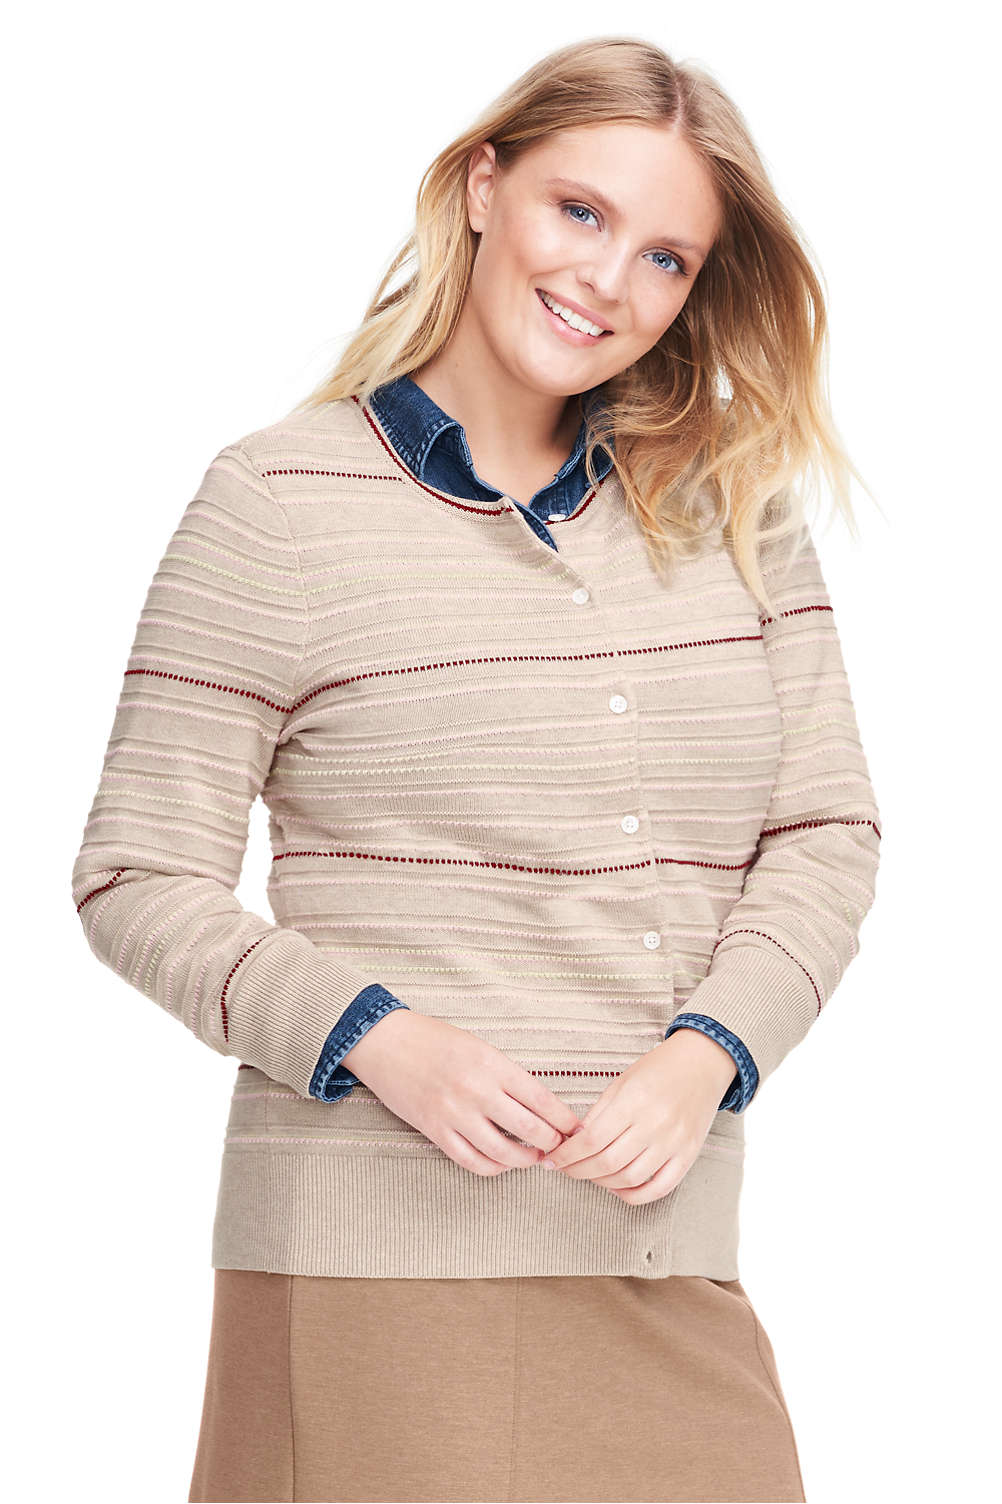 5616bfce8e1a Women's Supima Cotton Cardigan Sweater from Lands' End